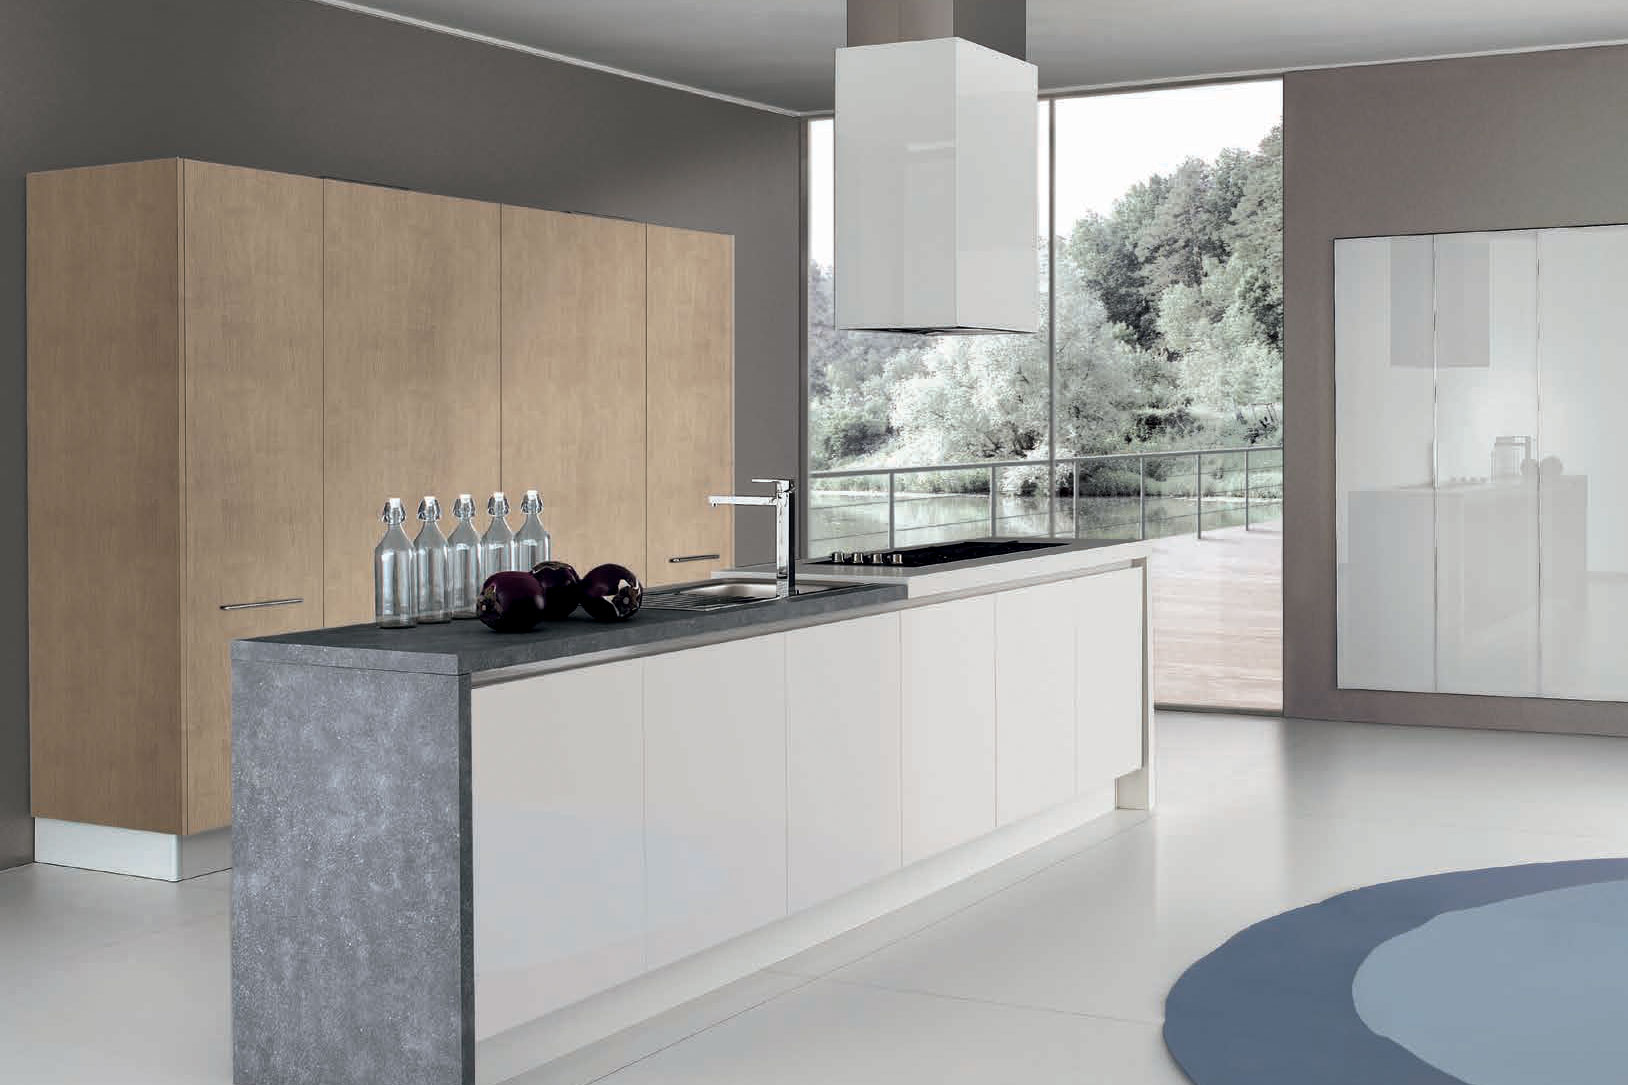 Modern European Kitchen Cabinets Modern Kitchen Cabinets | European Cabinets & Design Studios